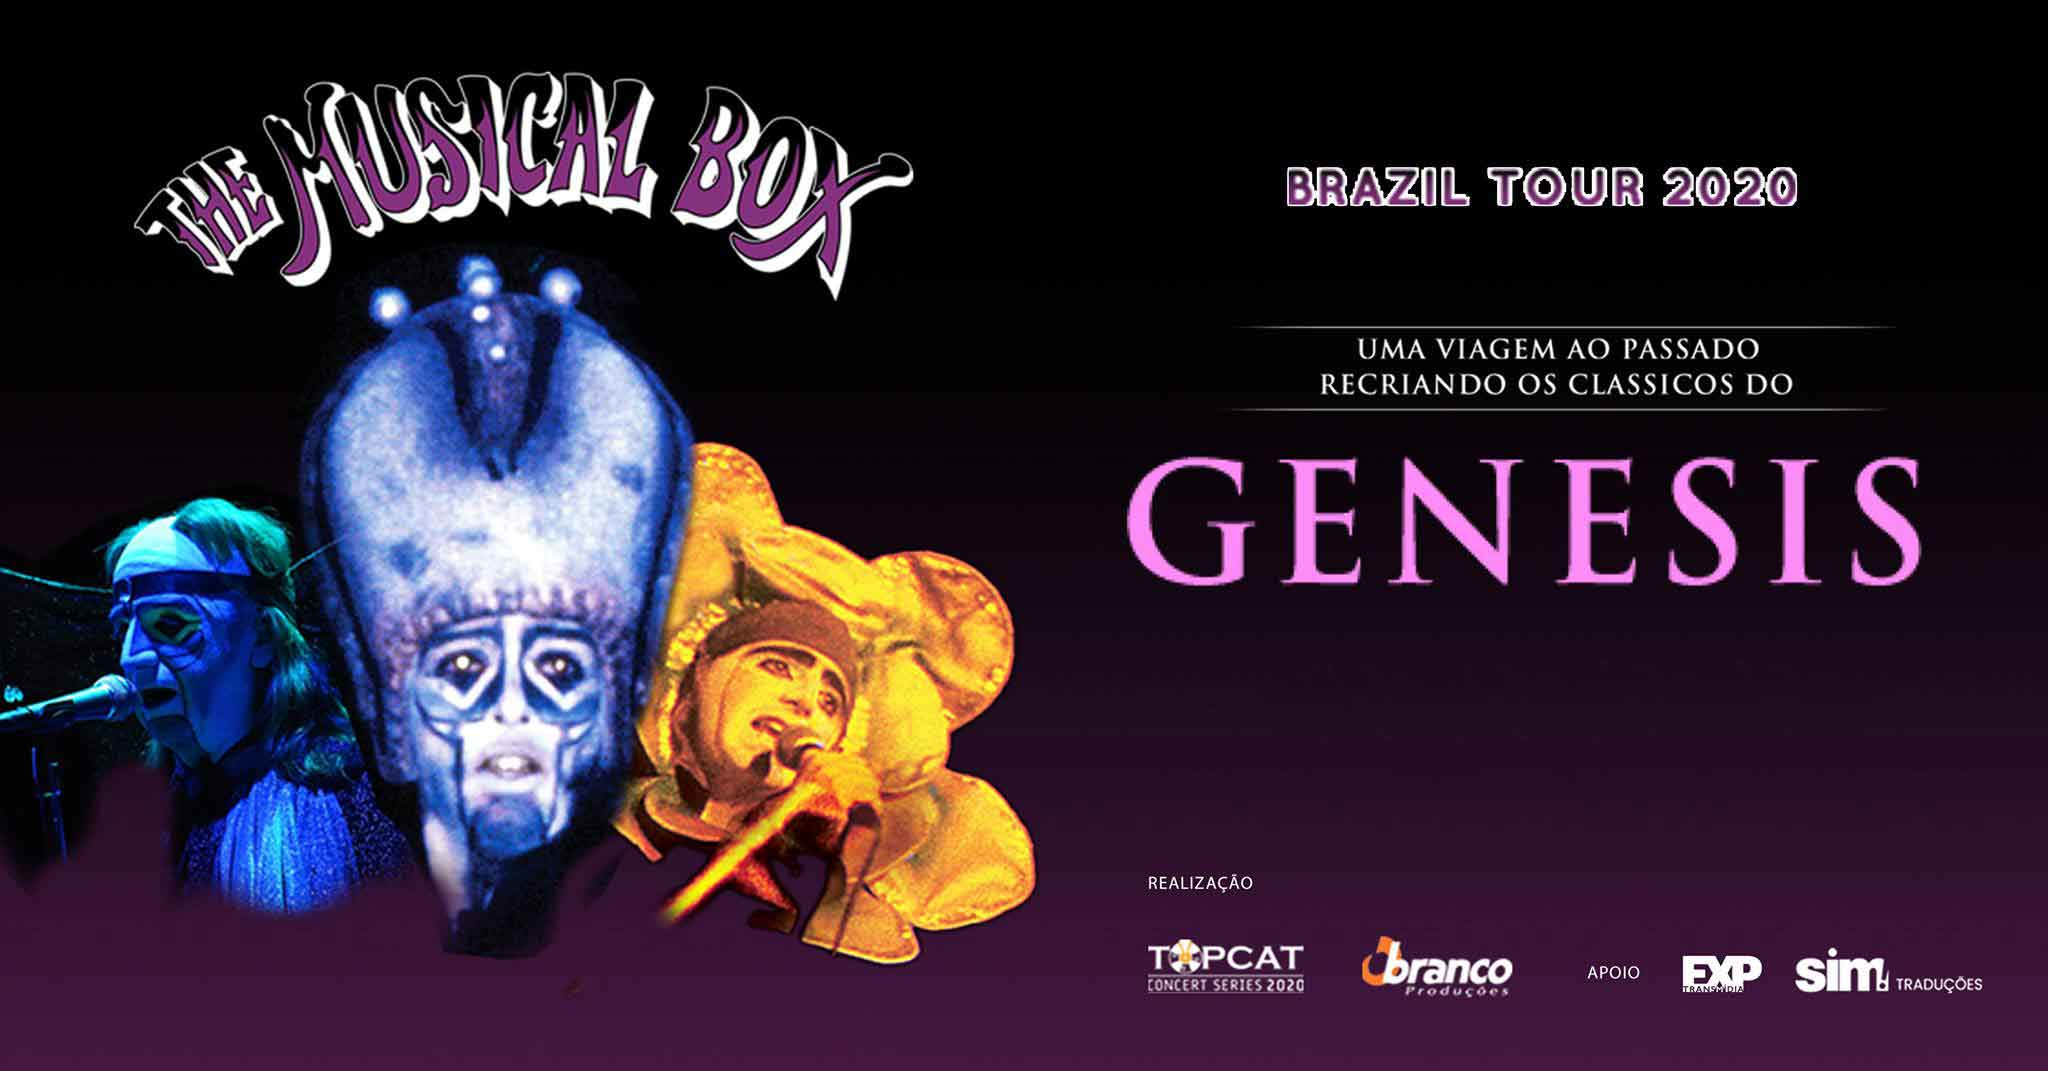 The Musical Box Brazil